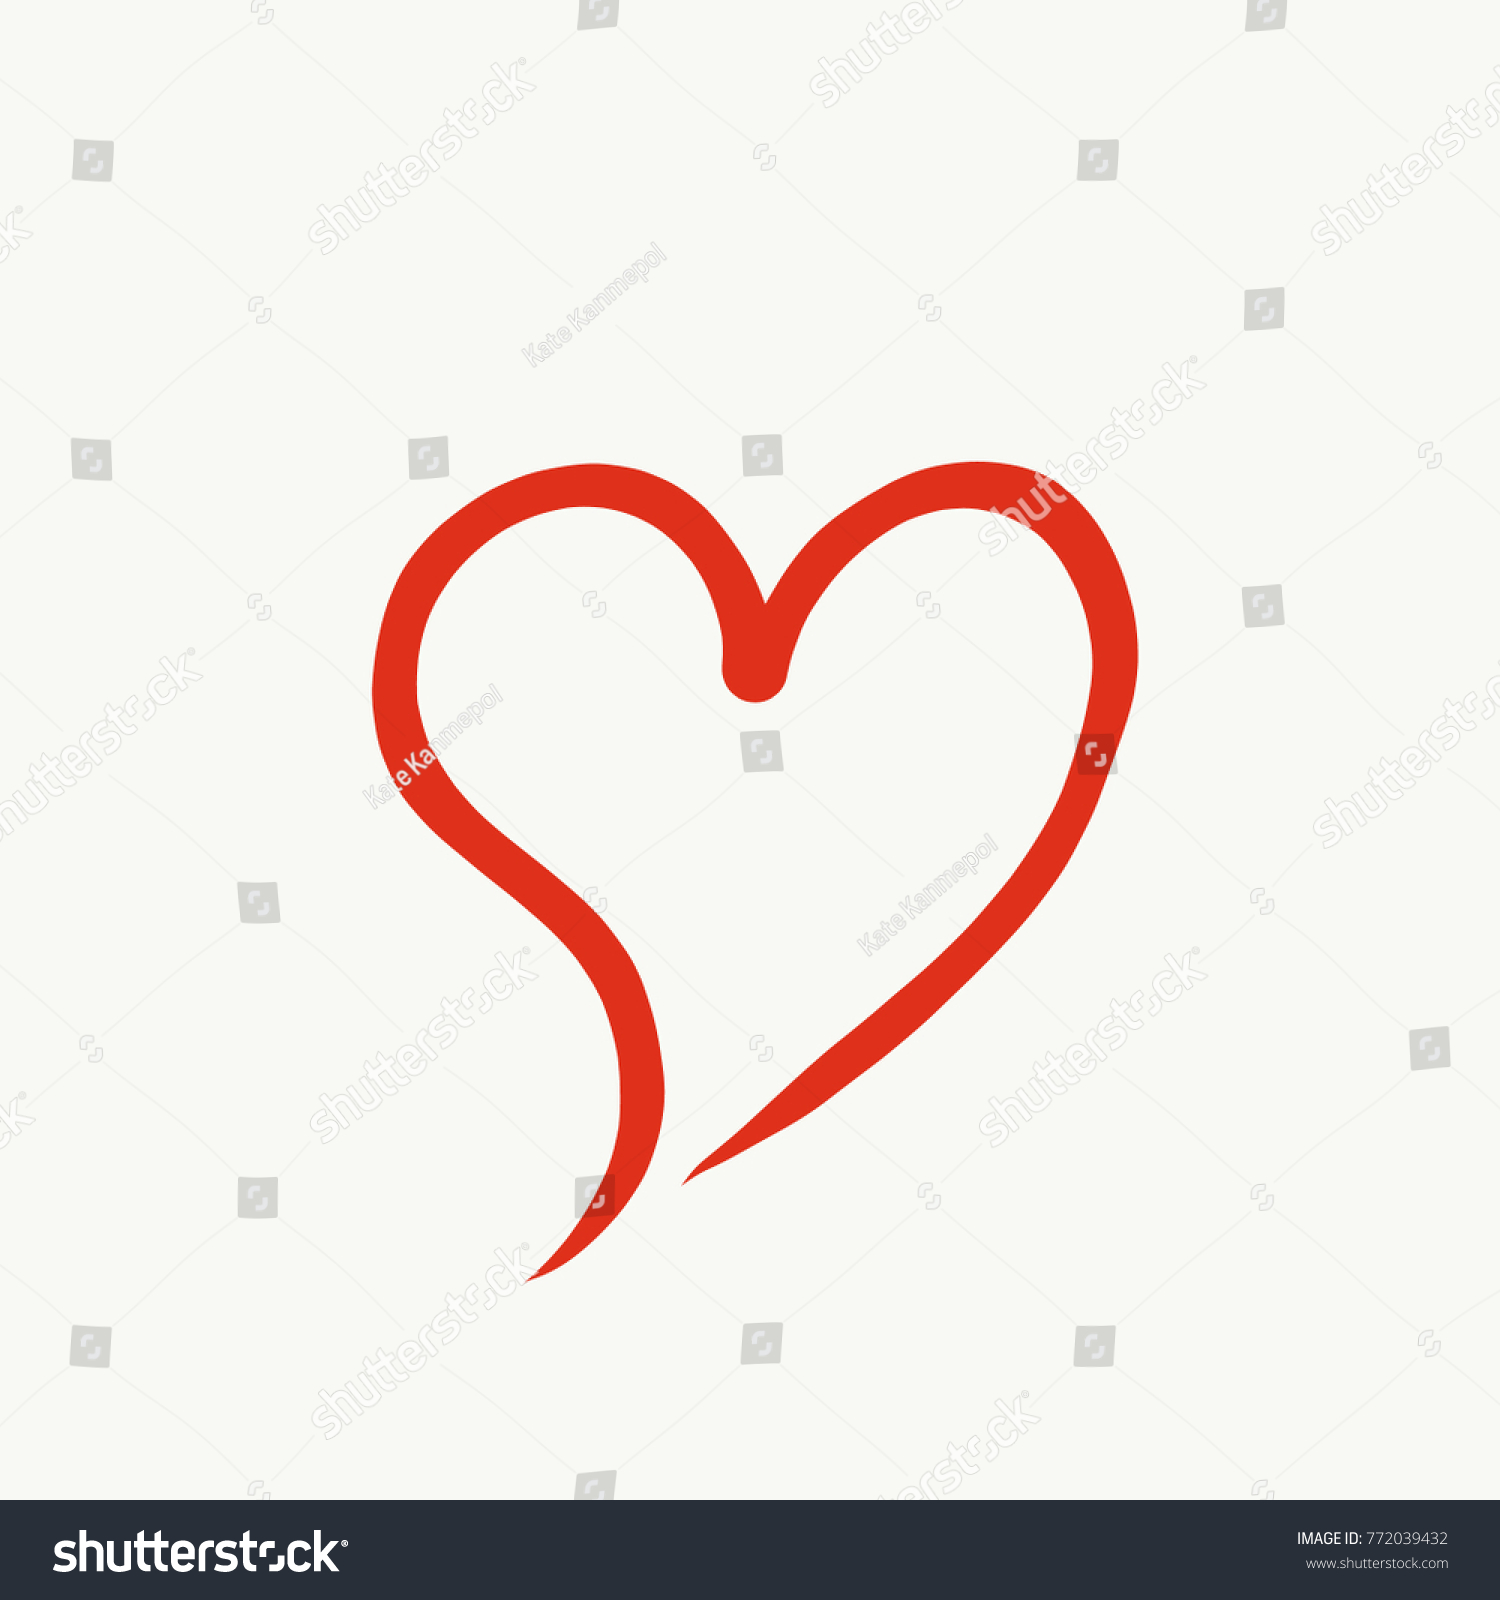 Red Heart Sign Symbol Drawing Valentine Day Love Couples Wedding